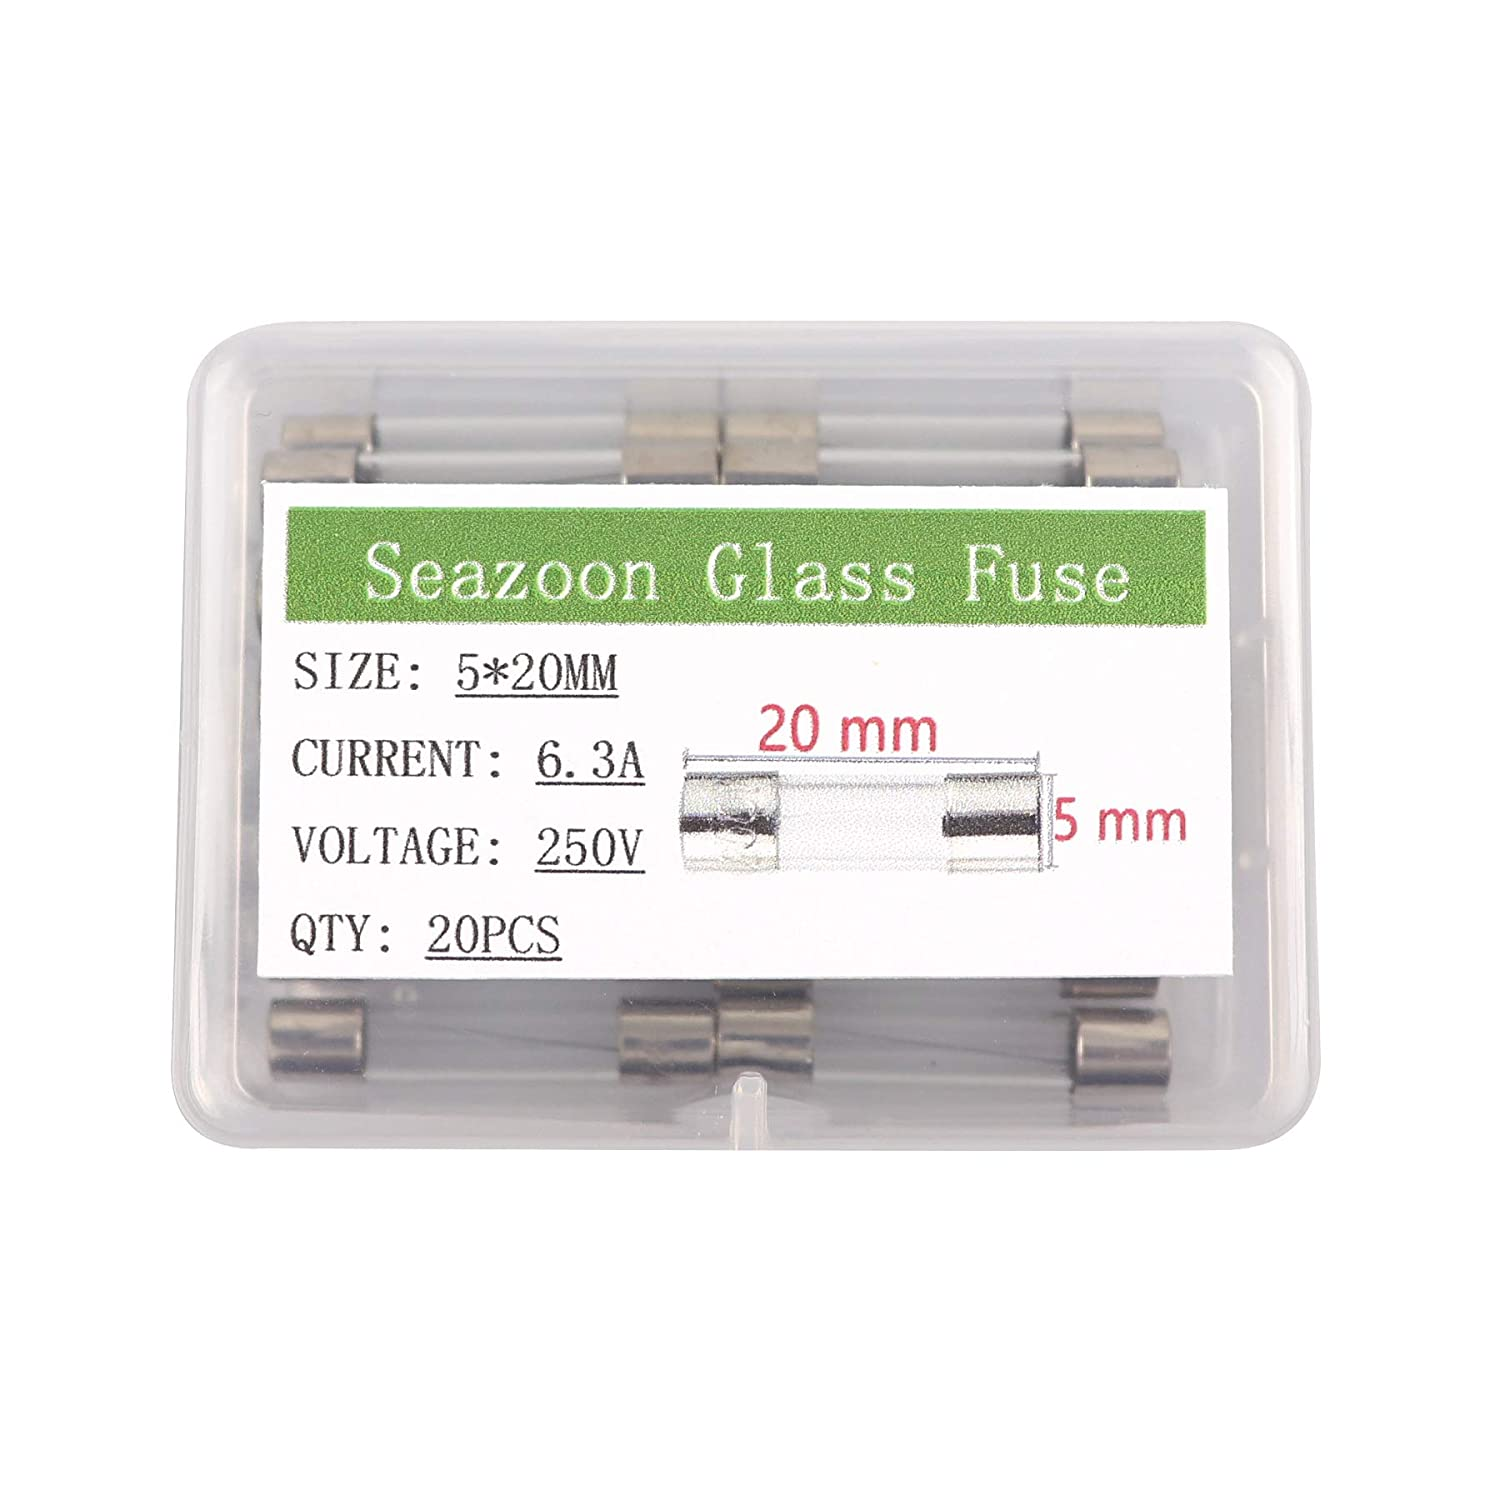 Seazoon 20Pcs 5x20mm 6.3A 6.3amp 250V Quick Blow Glass Tube Fuse Assorted Kits Fast-Blow Fuses